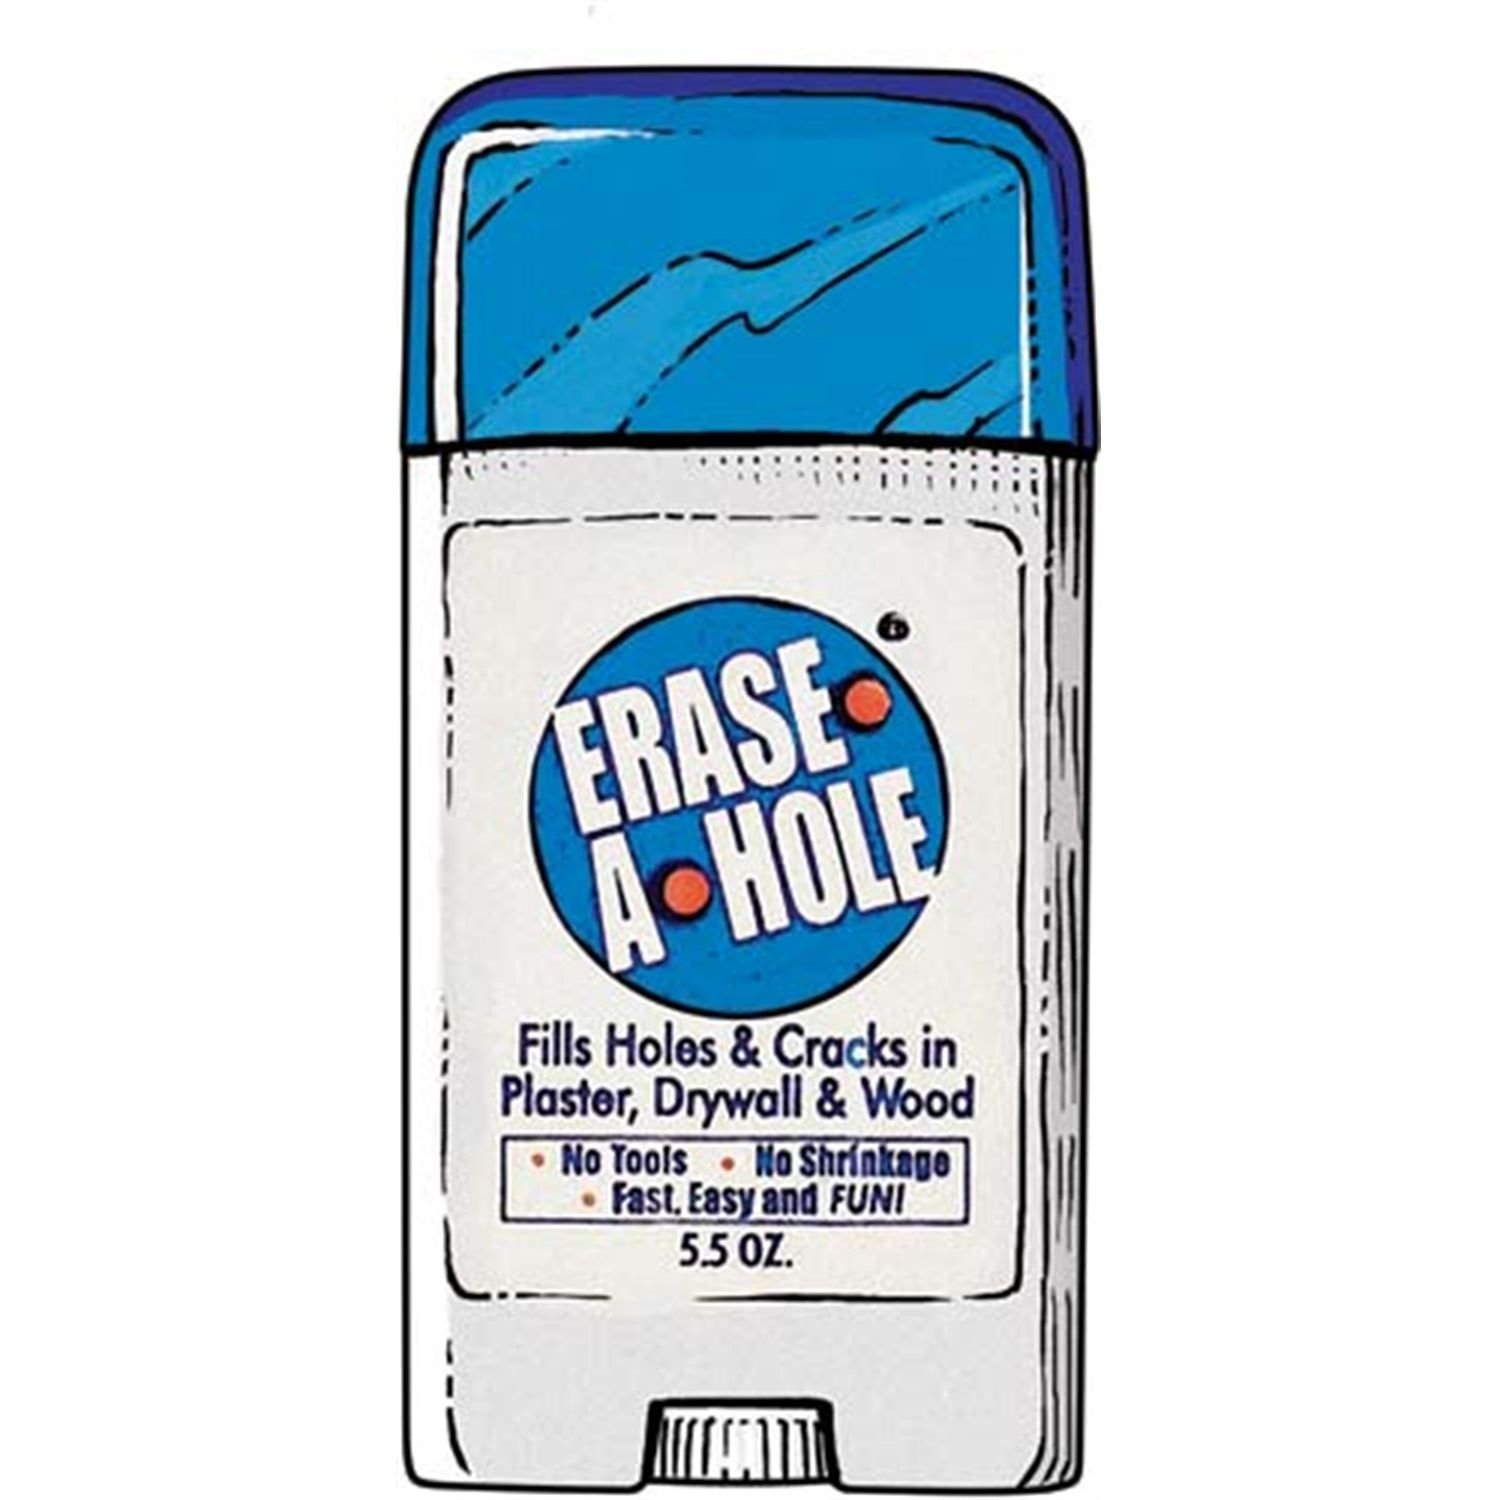 Erase-A-Hole repair putty from Duluth Trading Company is the instant ...